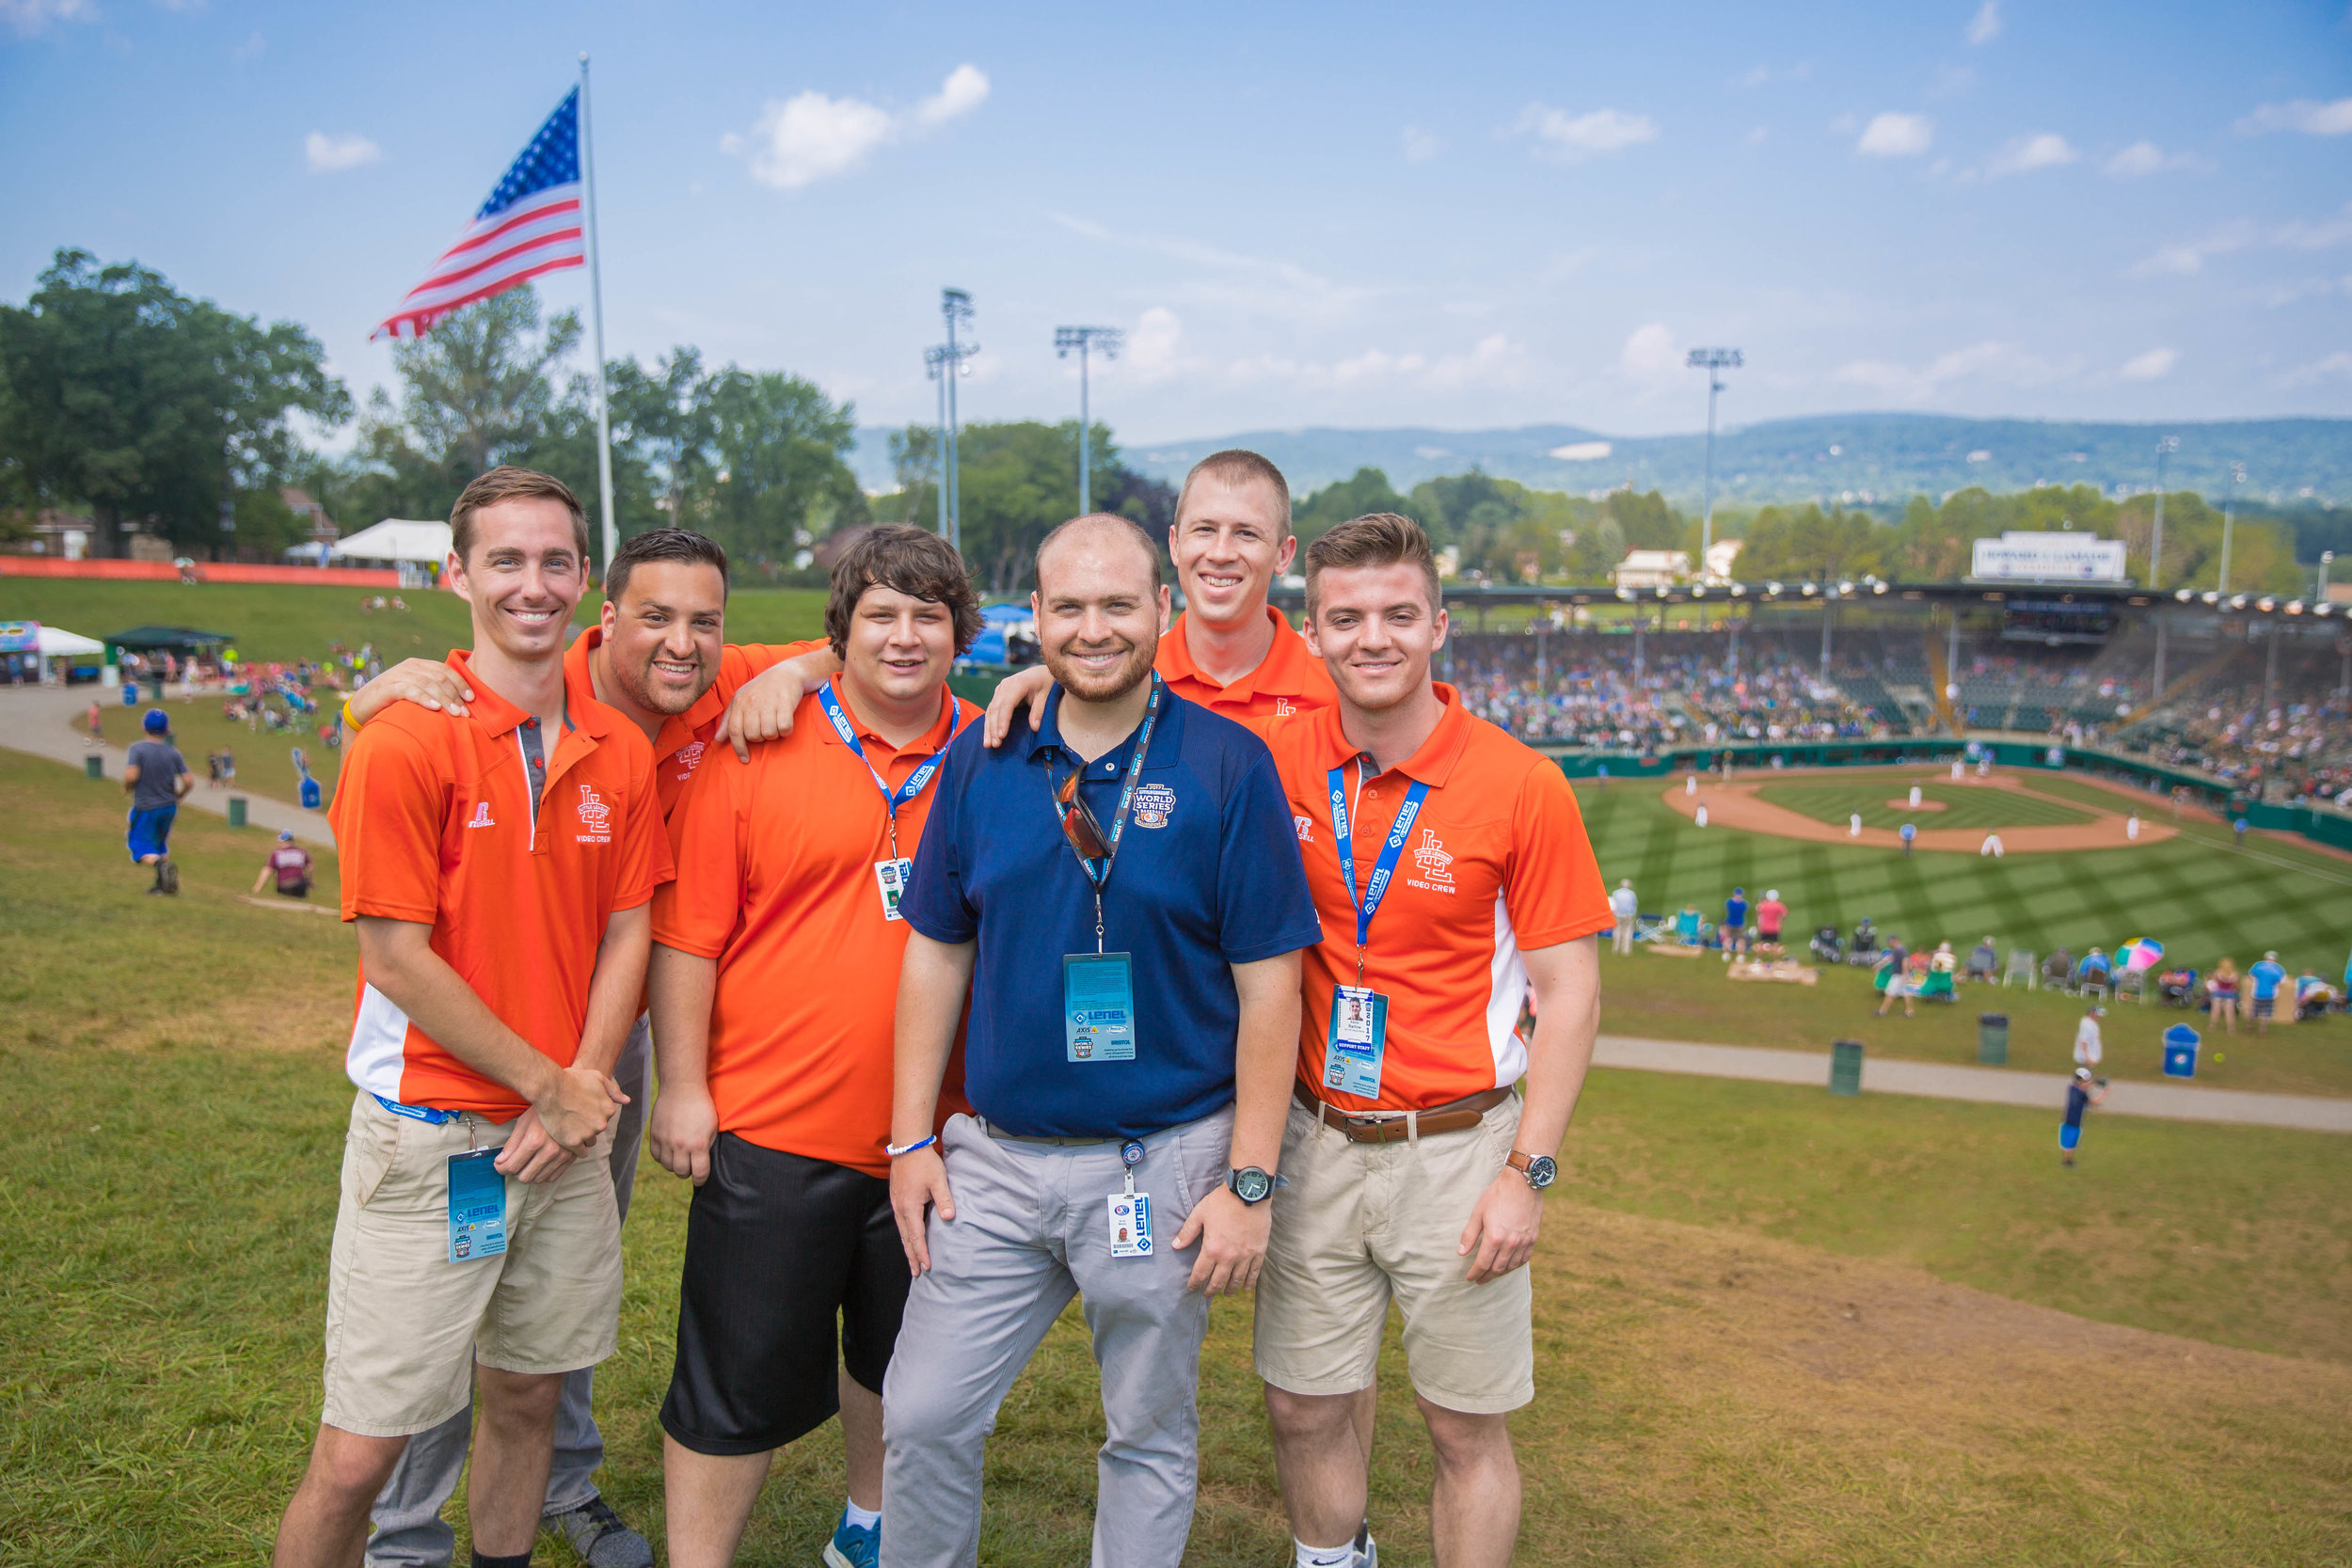 Special thanks to our incredible team for an unforgettable week in Williamsport!